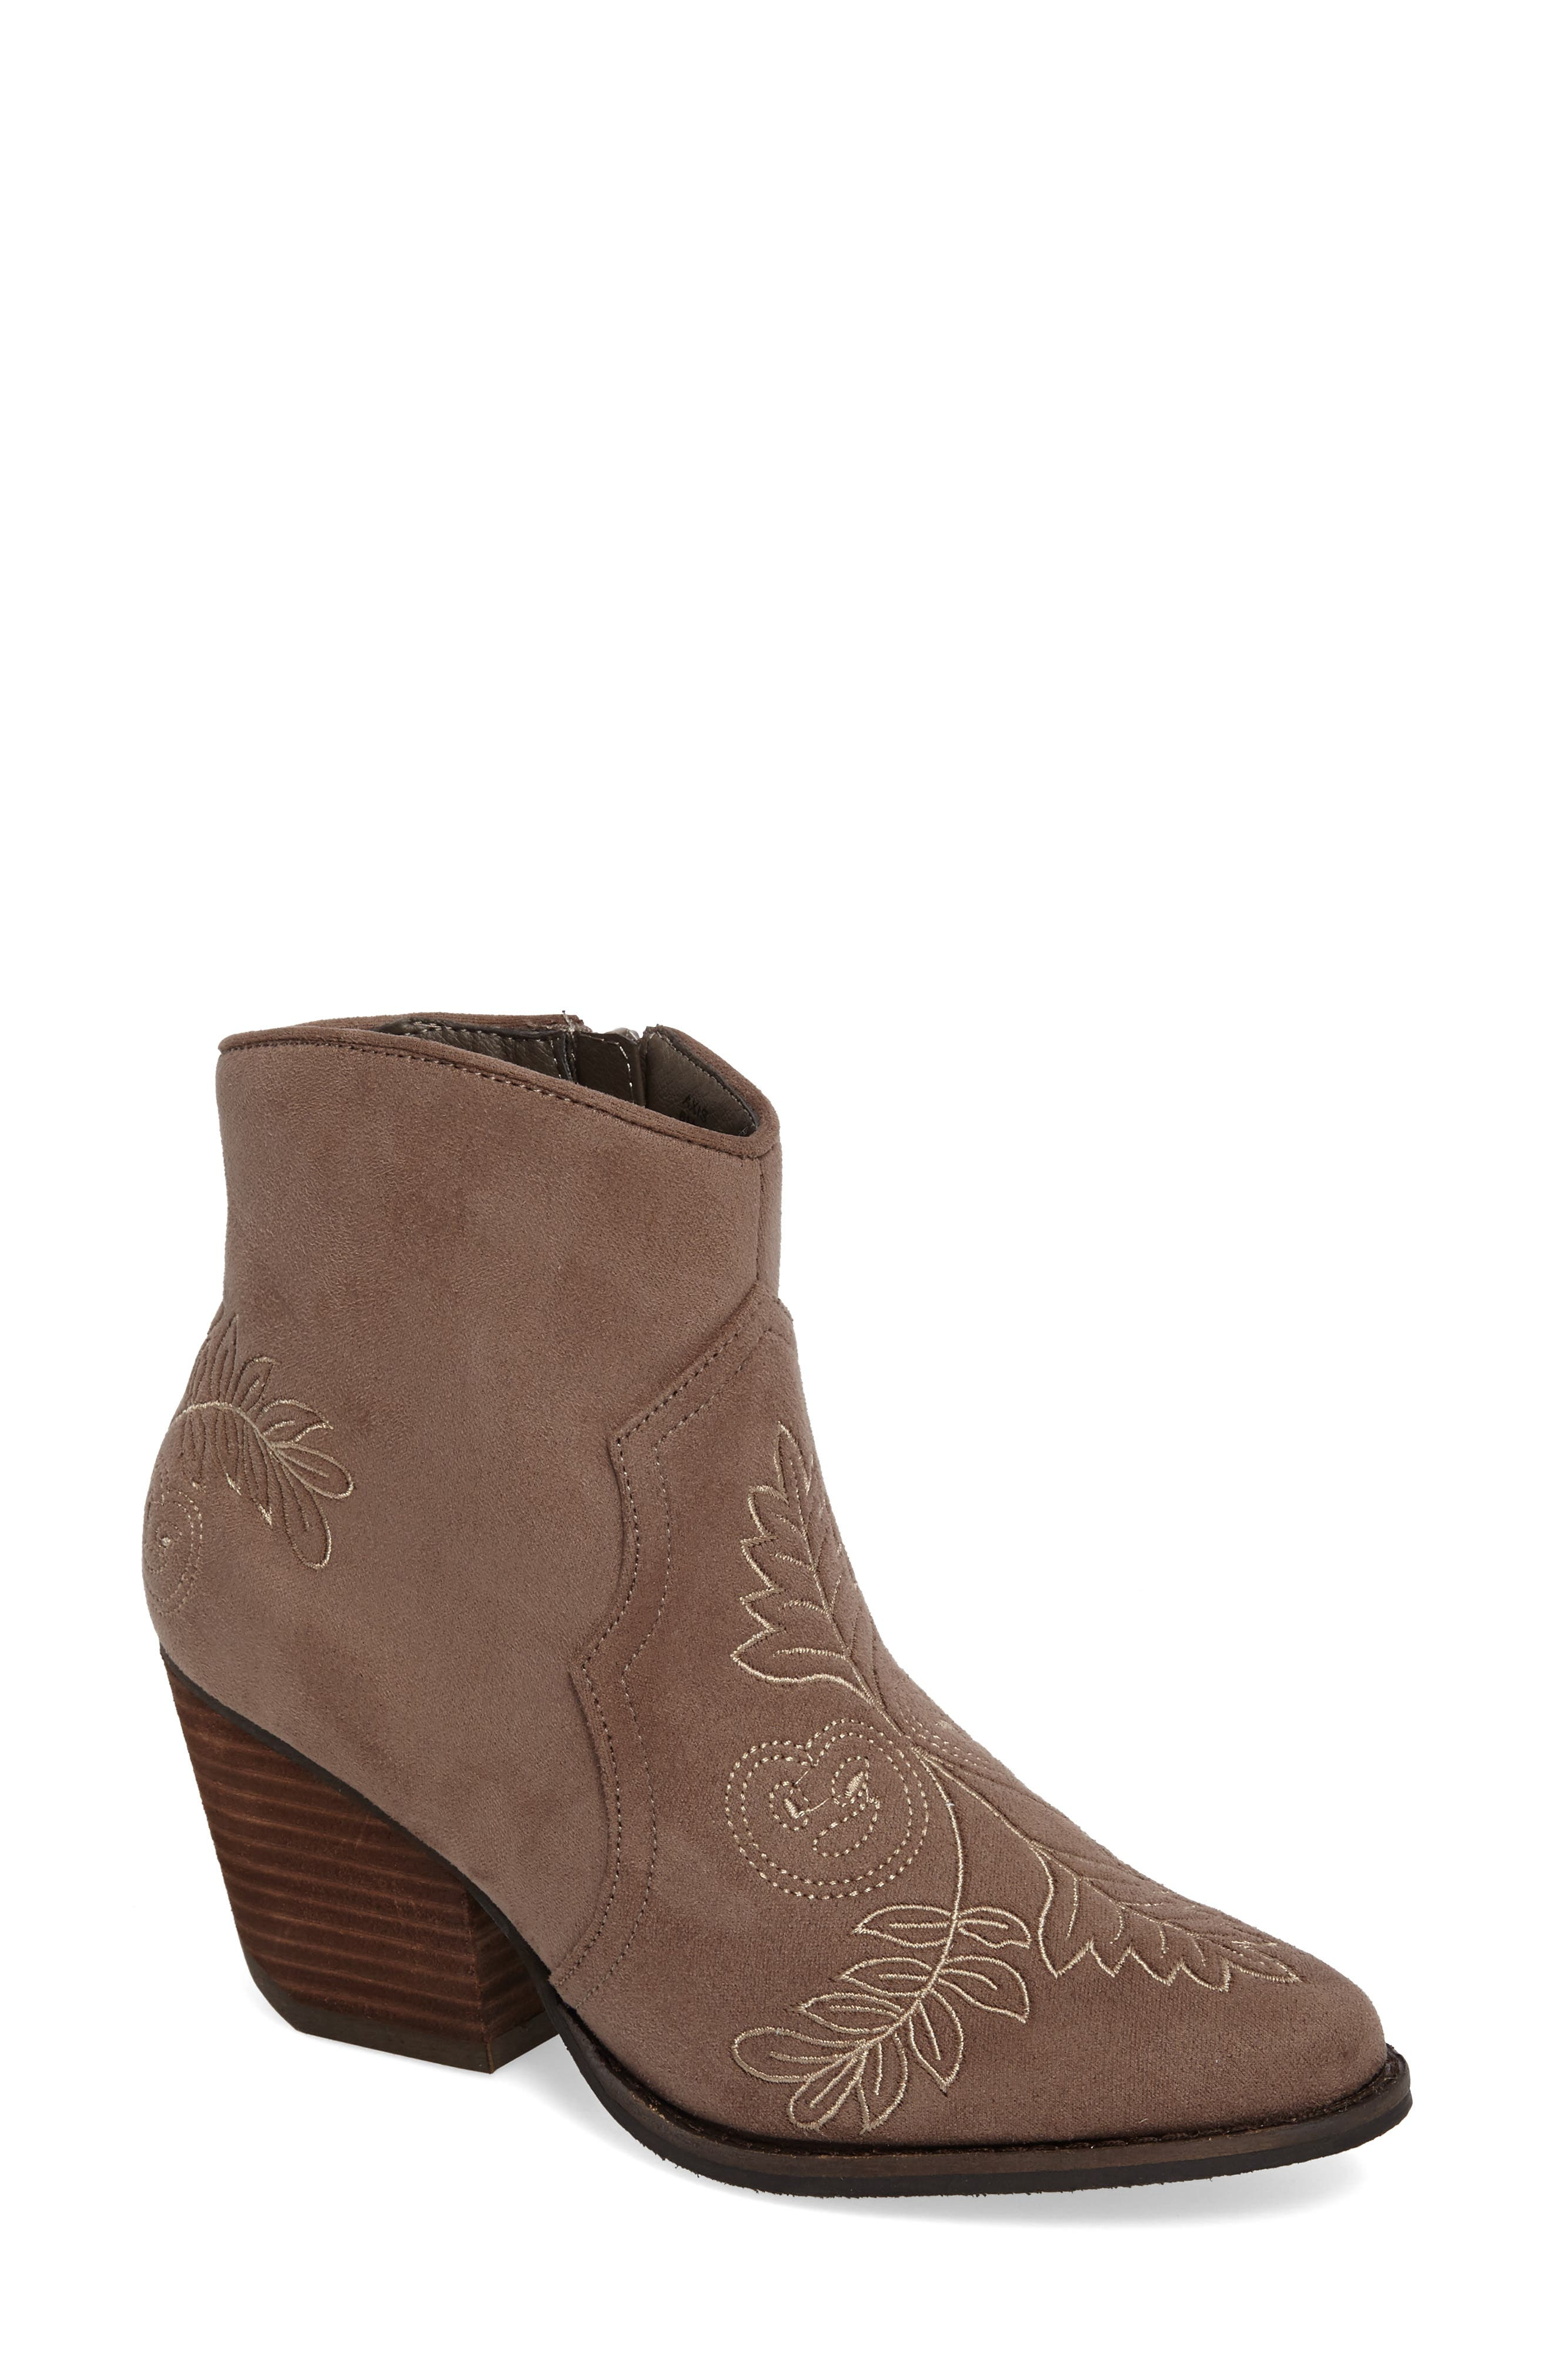 Axis Embroidered Bootie,                             Main thumbnail 2, color,